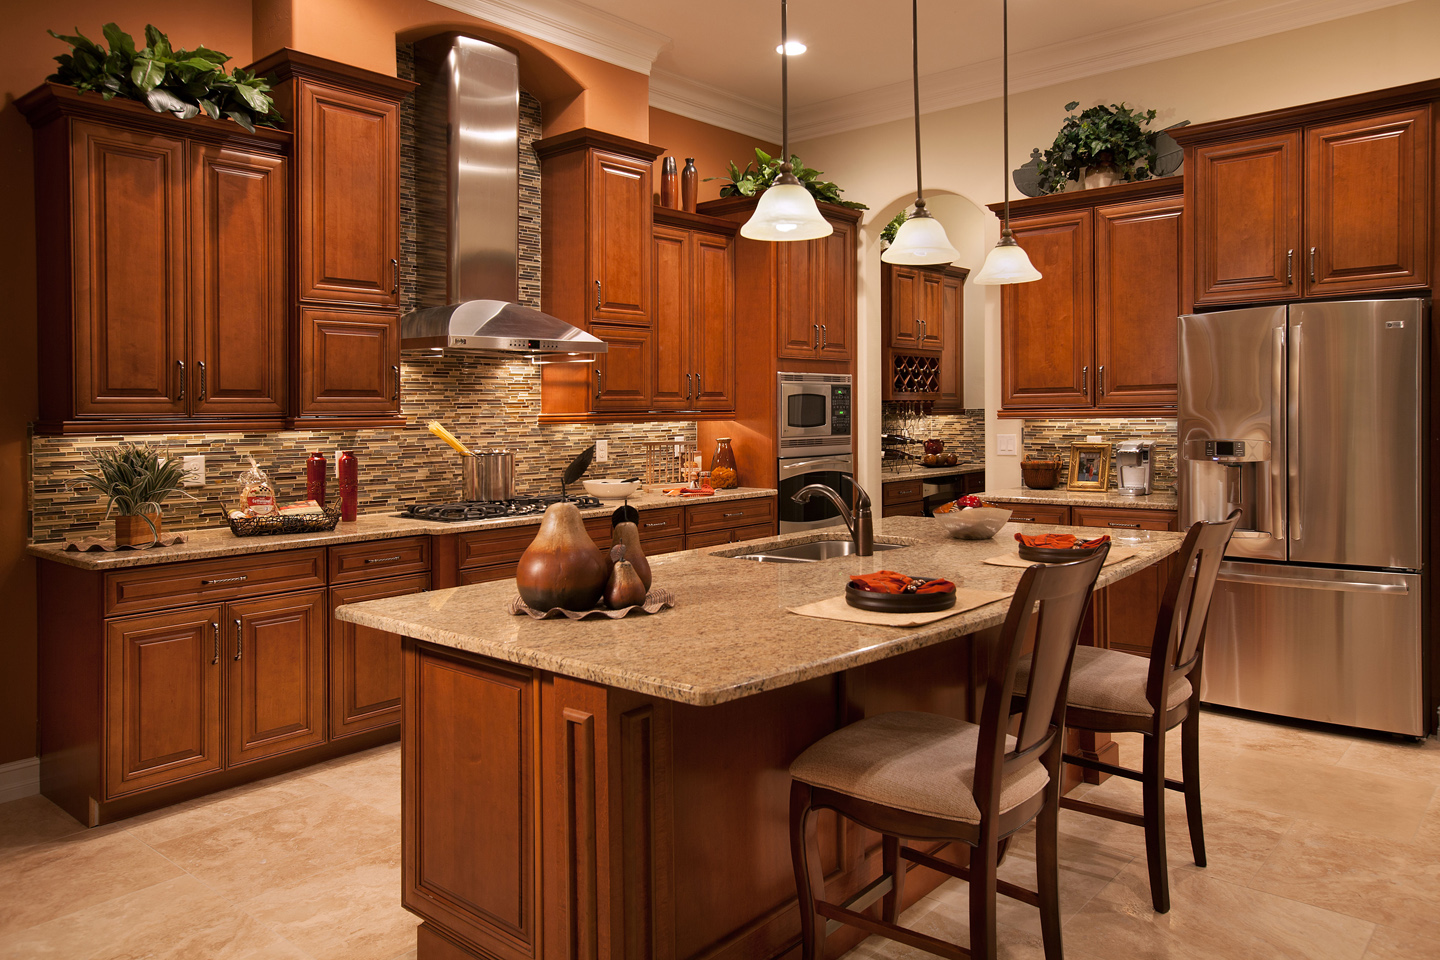 Fiddler's Creek Announces Washington Model Open in Chiasso on Model Kitchen Images  id=90875